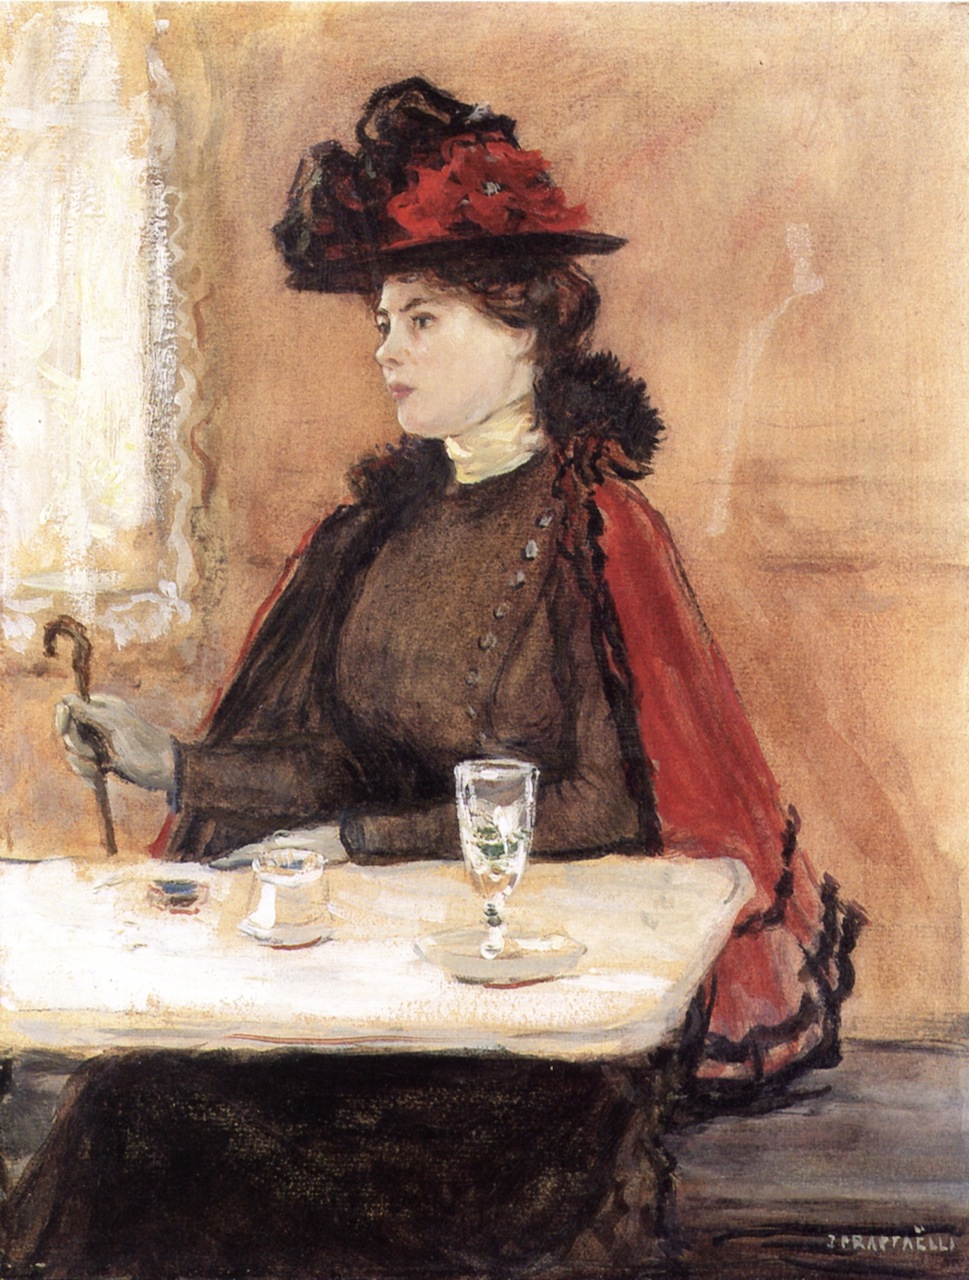 Young Woman in a Cafe by Jean-François Raffaëlli